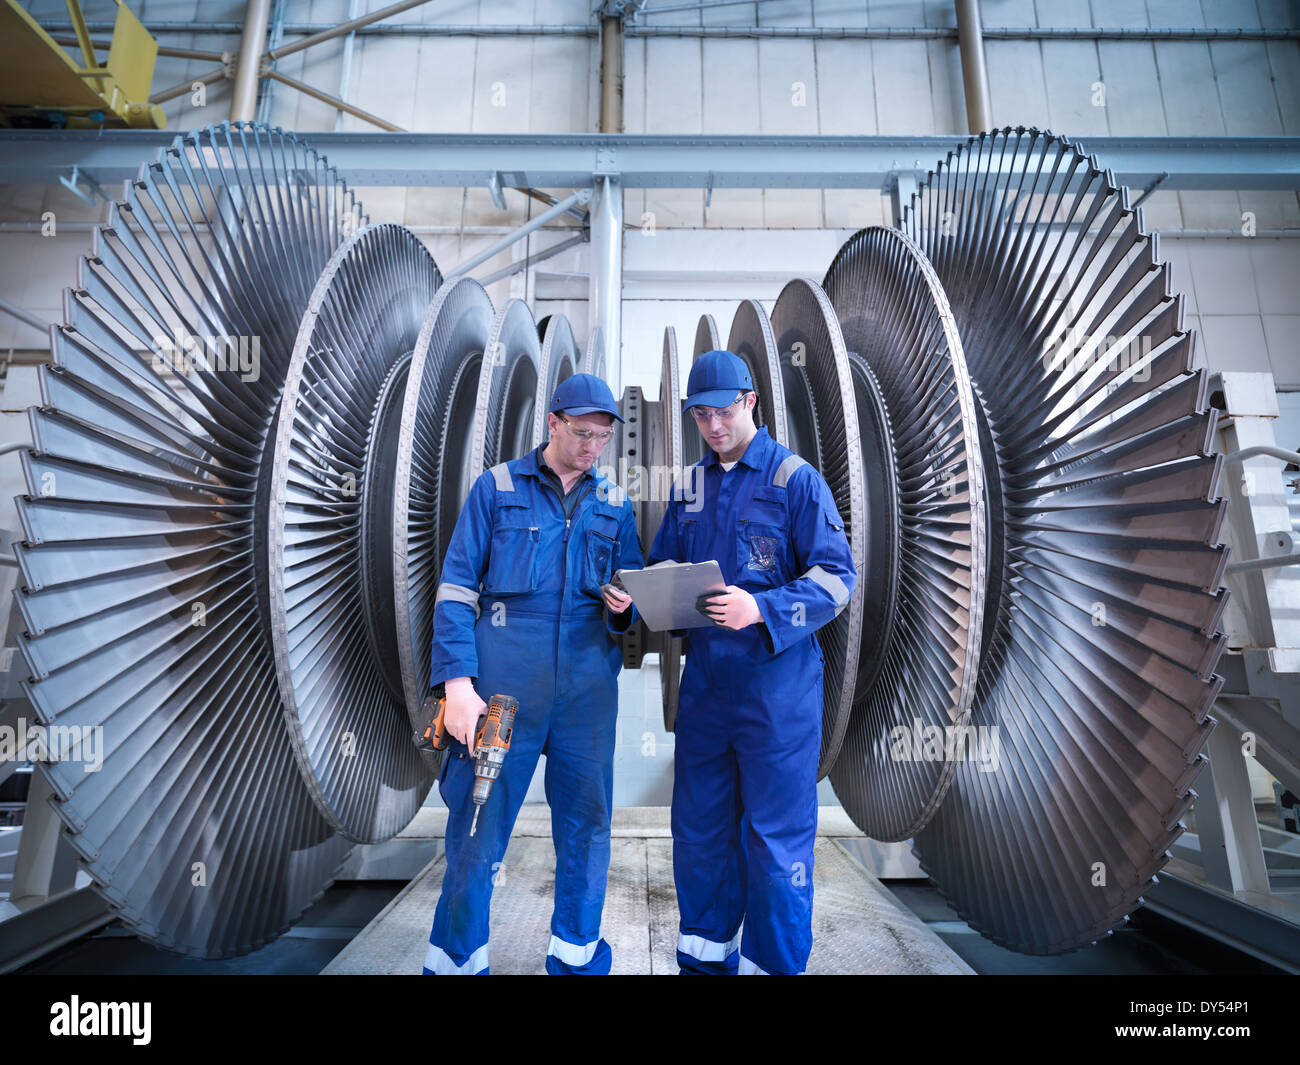 Engineers discussing notes in front of steam turbine in workshop - Stock Image